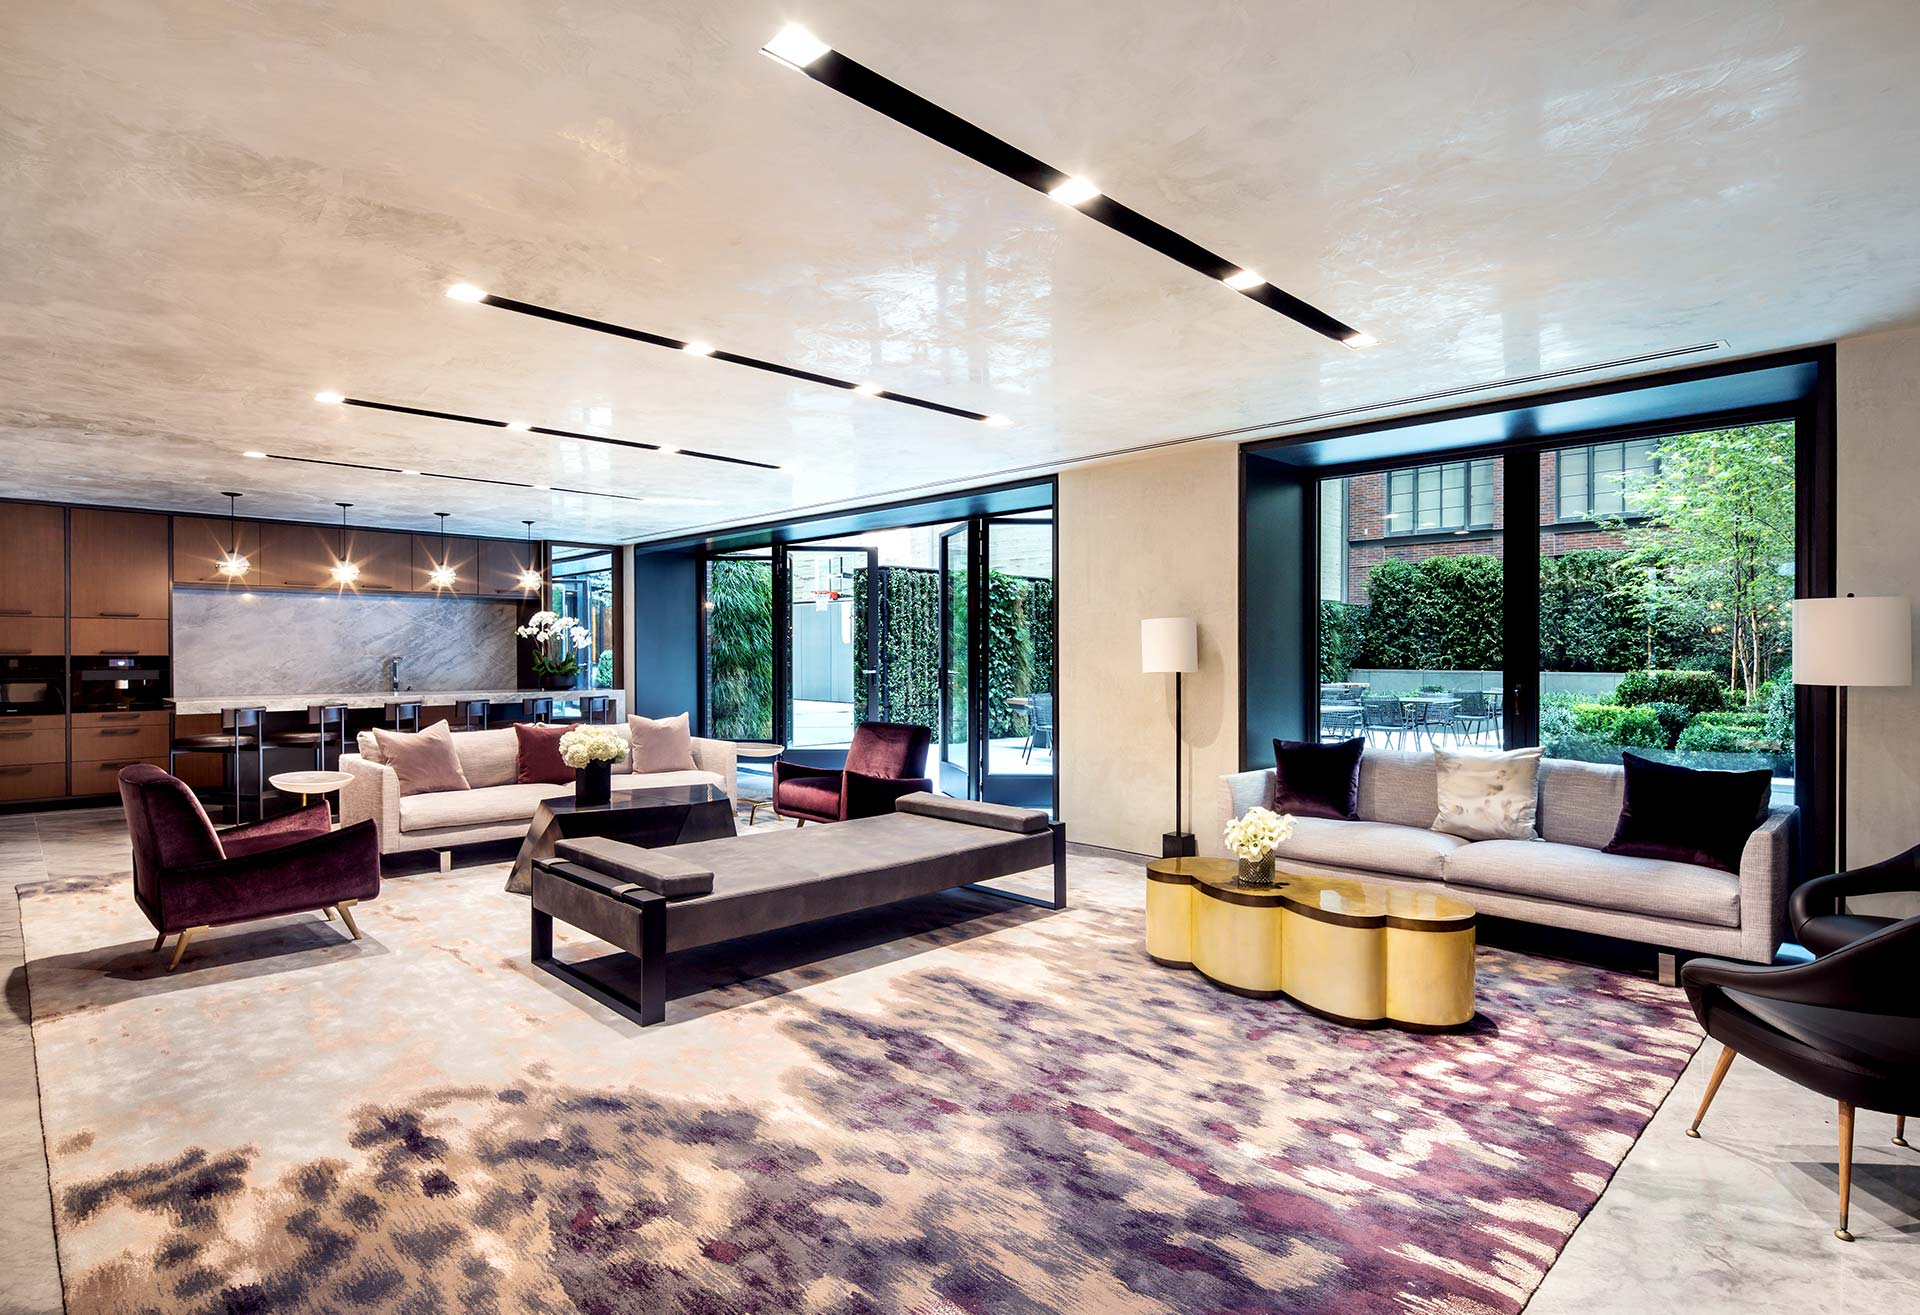 Indoor Lounge and Outdoor Basketball Court